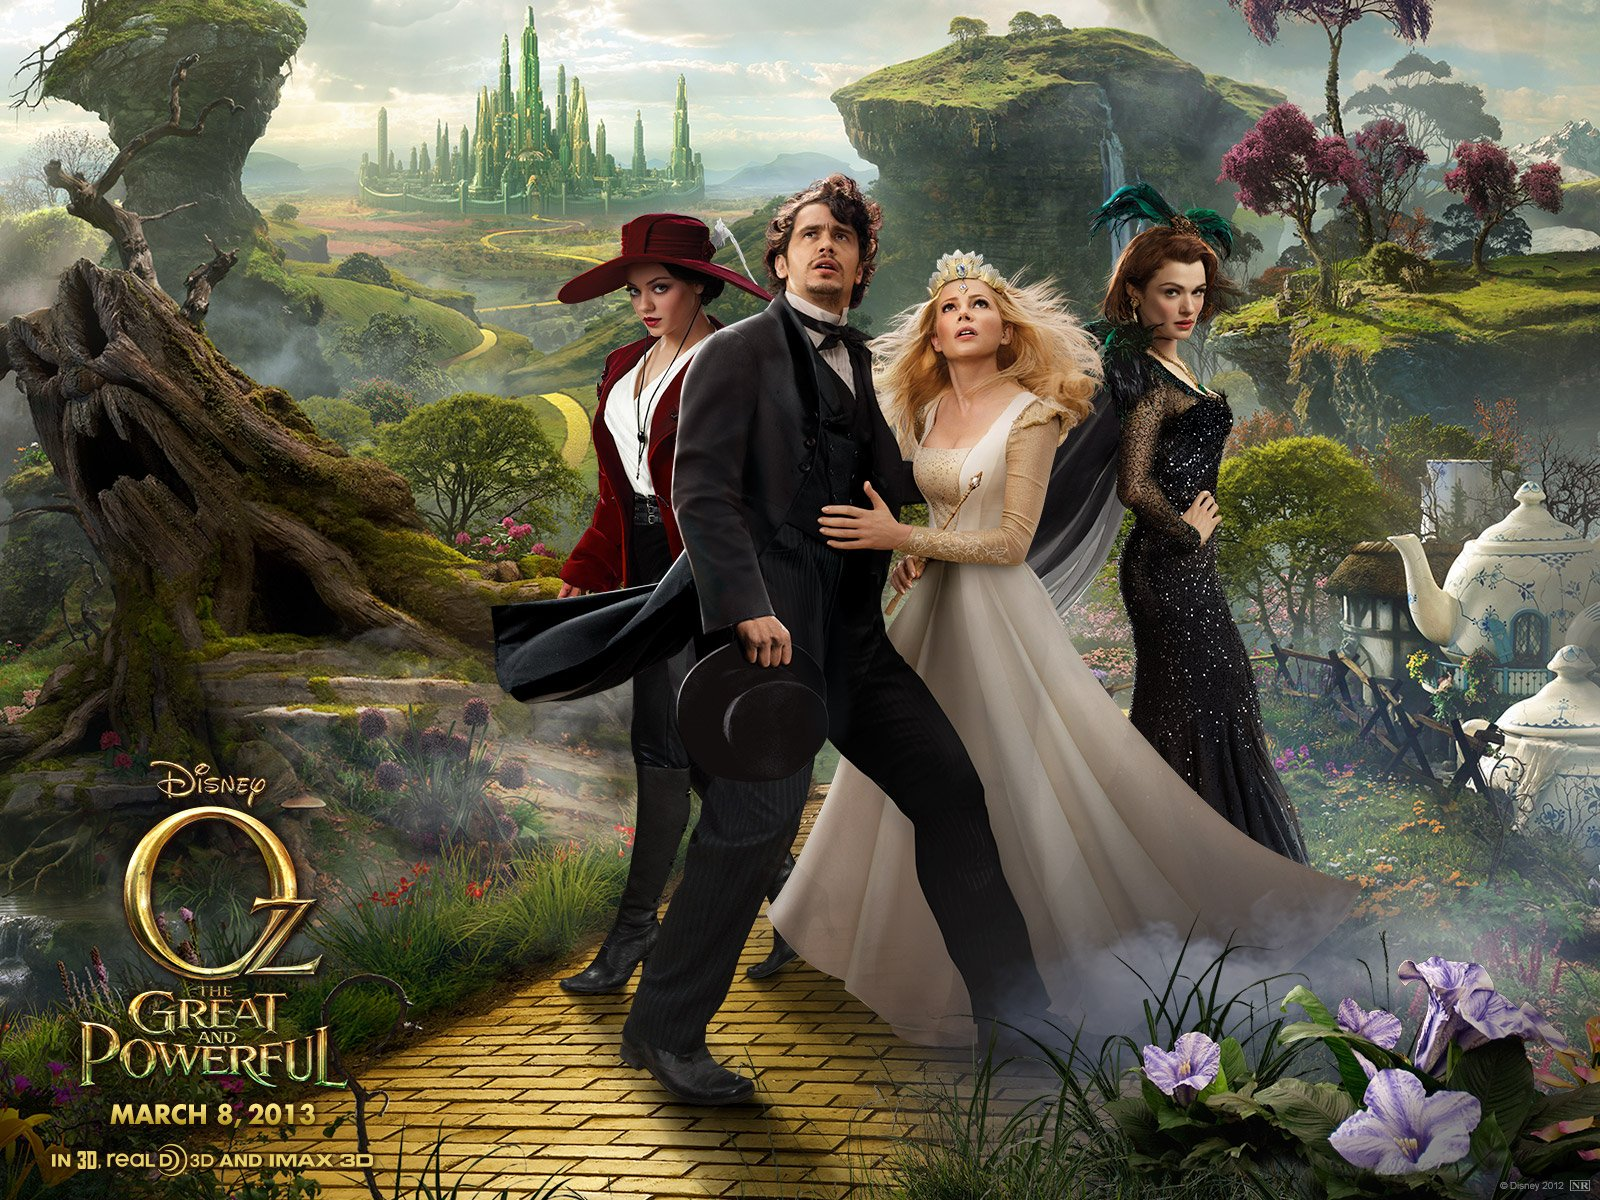 INTERSECTIONS: Film Review – 'Oz the Great and Powerful ... Oz The Great And Powerful Cast Oz